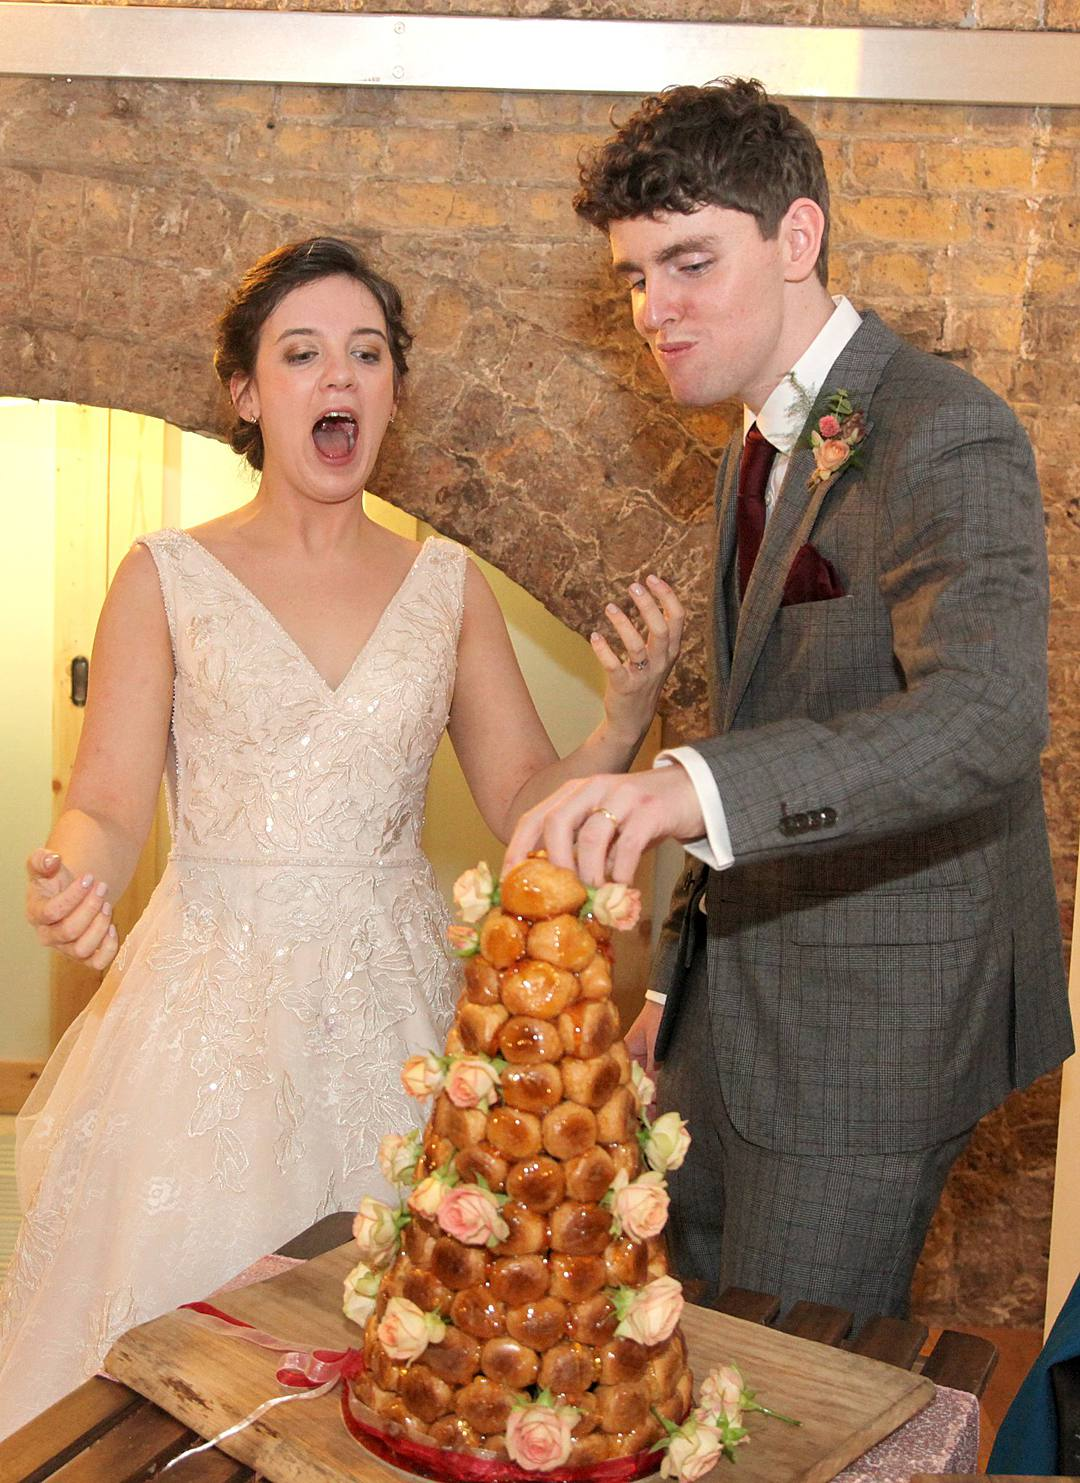 Louise Moule Photography, Crazy Golf, Profiterole Tower, Red London Bus Hire, Wedding Planner, City Wedding, Event Planner, London Wedding Planner, City Weddings, Devine Bride